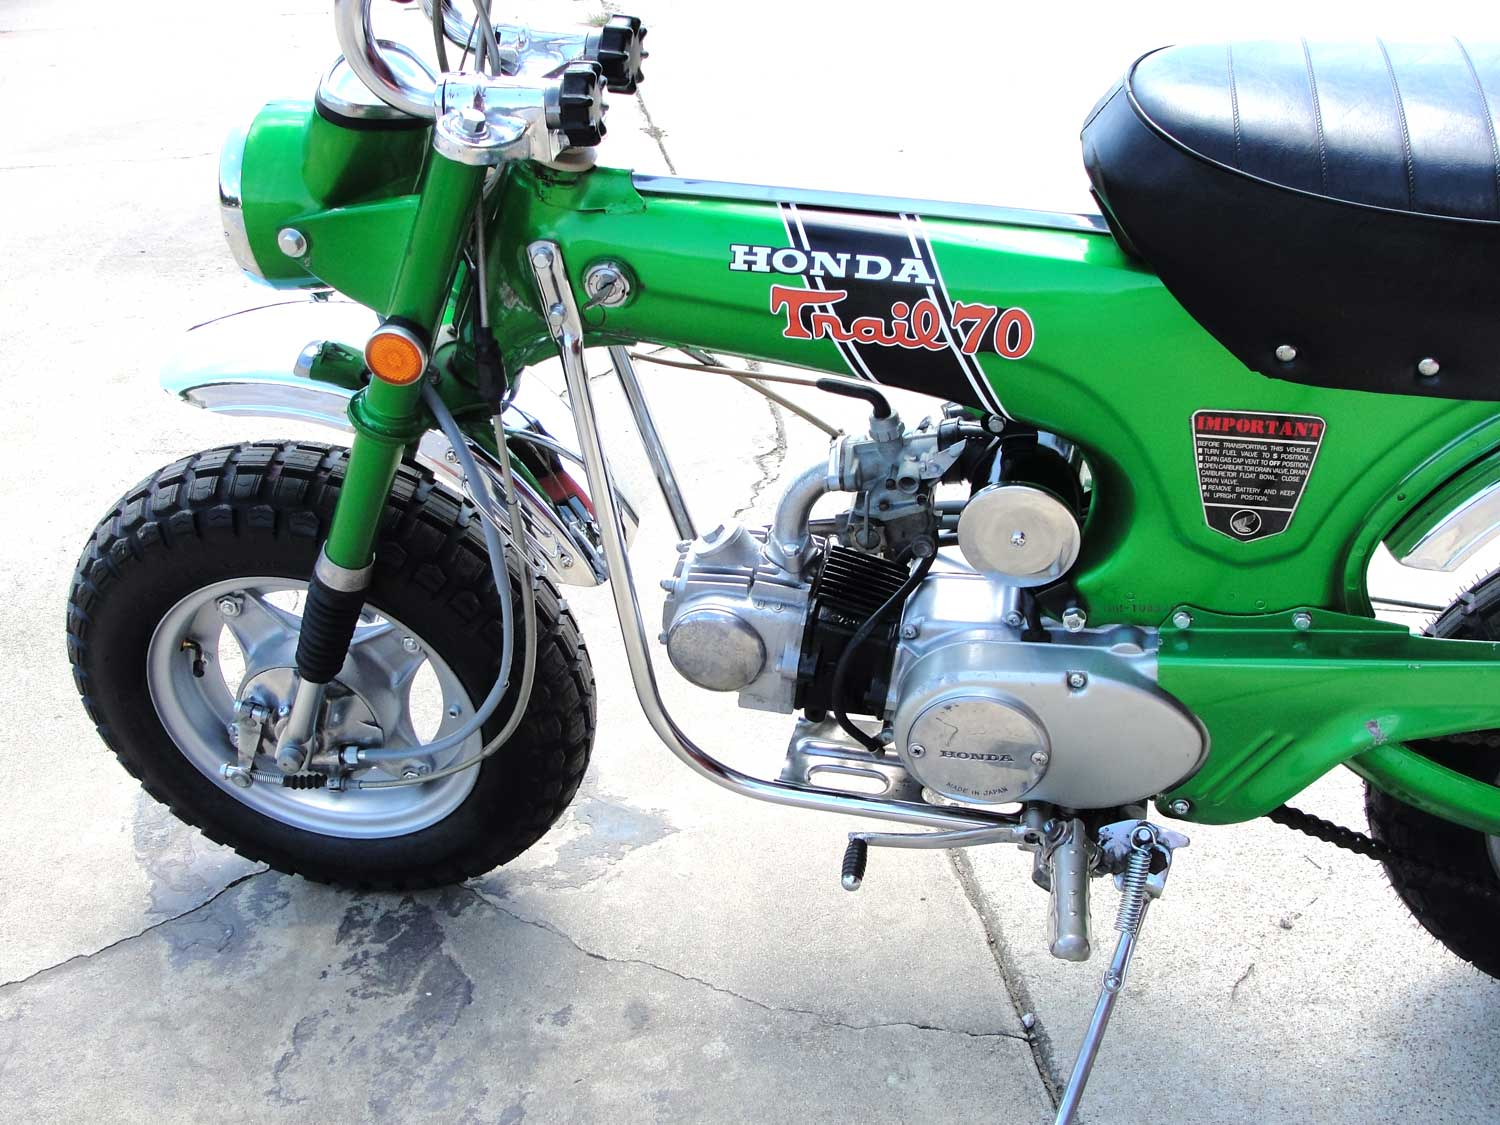 Bfs Ct70 H Ko Original Shriner Bike 899 Miles Emerald Green With 1970 Honda Moped If You Have Any Question About This Other Of The Bikes That We Will Be Listing Please Do Not Hesitate To Reach Out Price 467500 Sold